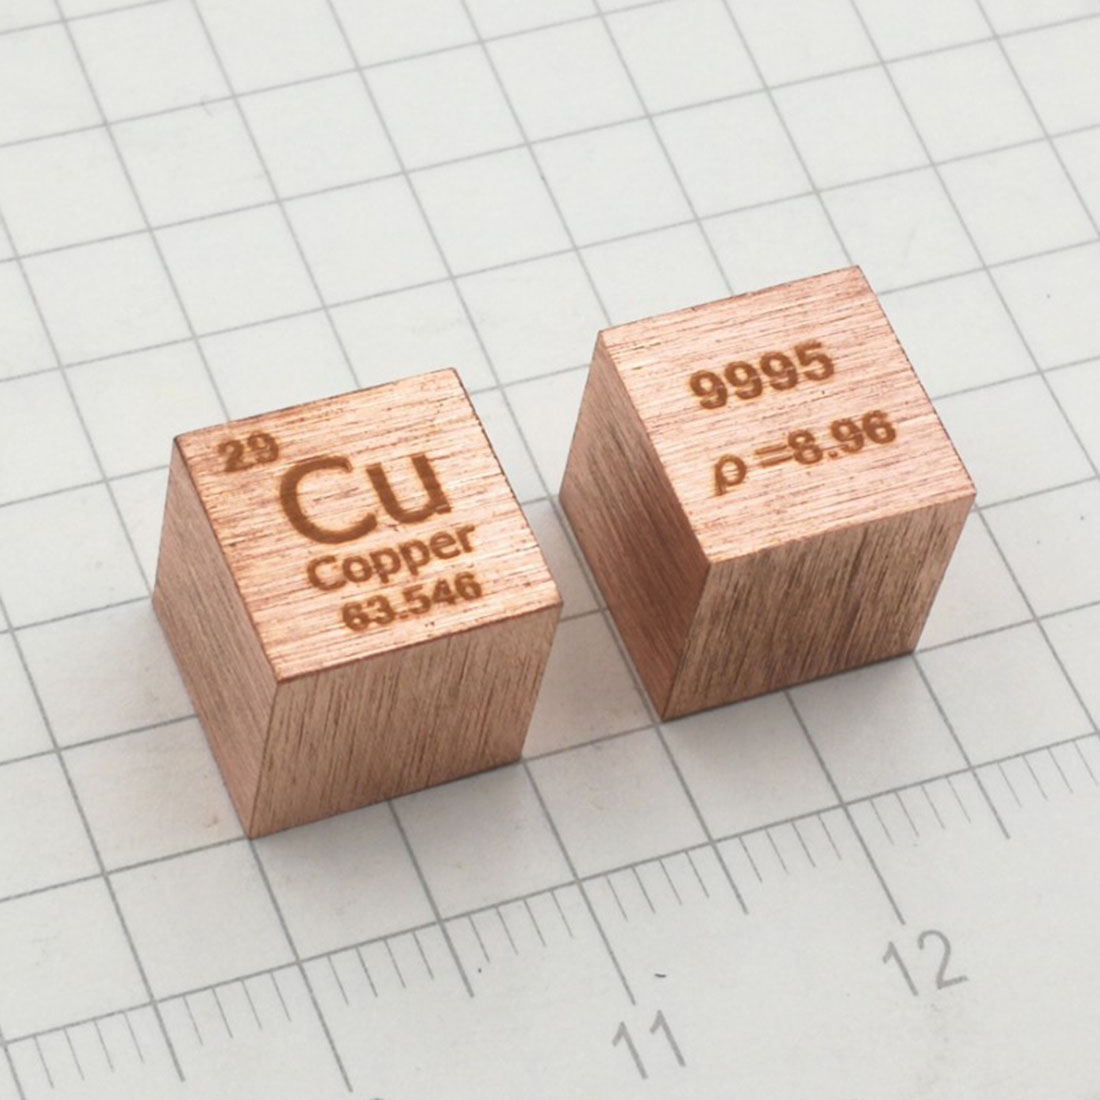 10mm (Cu≥99.9%) Wiredrawing Copper Cube Periodic Table Of Elements Cube Cu Hand Made DIY Crafts Display Educational